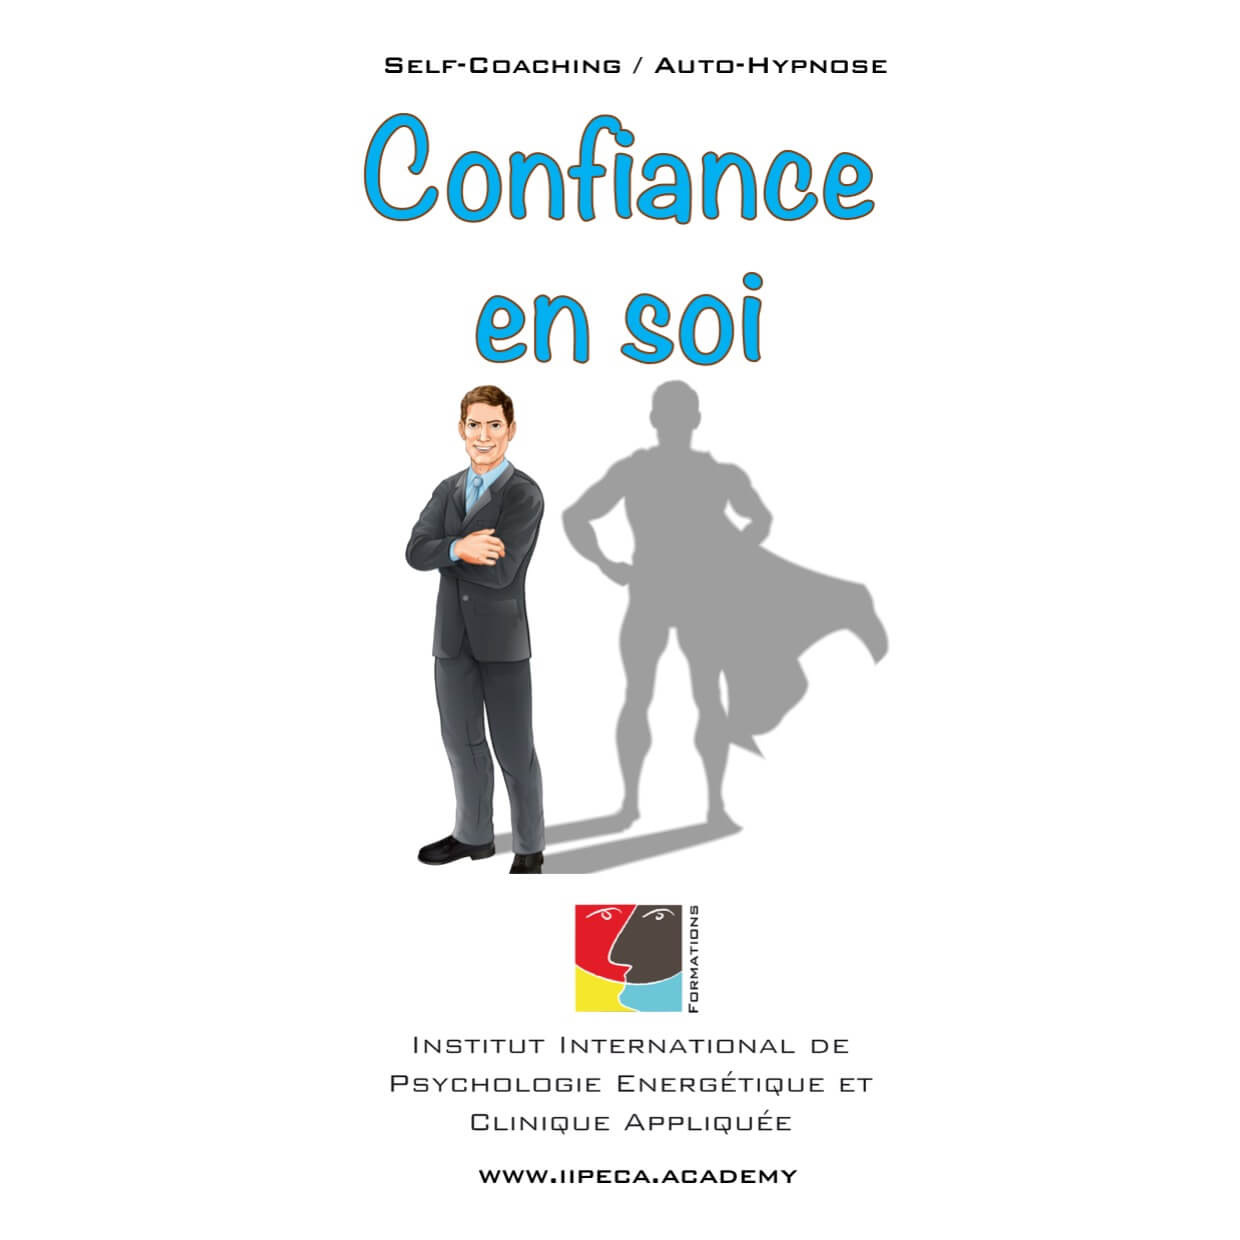 confiance soi iipeca academy mp3 self coaching auto-hypnose